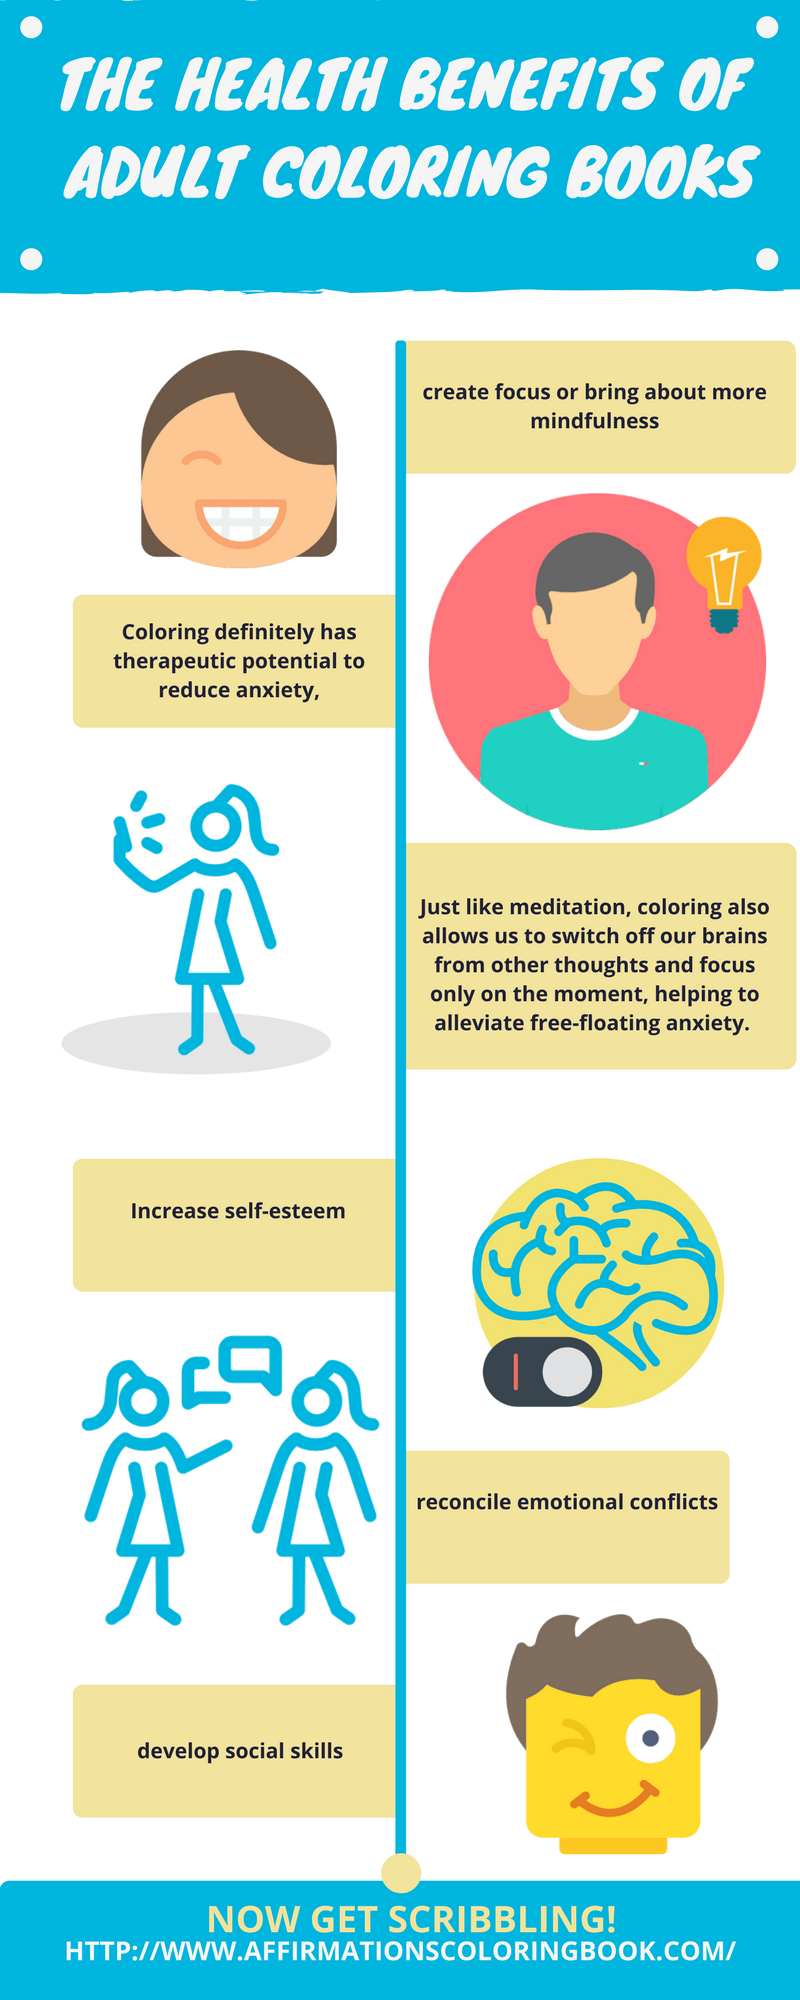 Colouring for adults benefits - Psychology Infographic Advice The Healht Benefits Of Adult Coloring Books Infographic Elearninginfograp Image Description The Healht Benefits Of